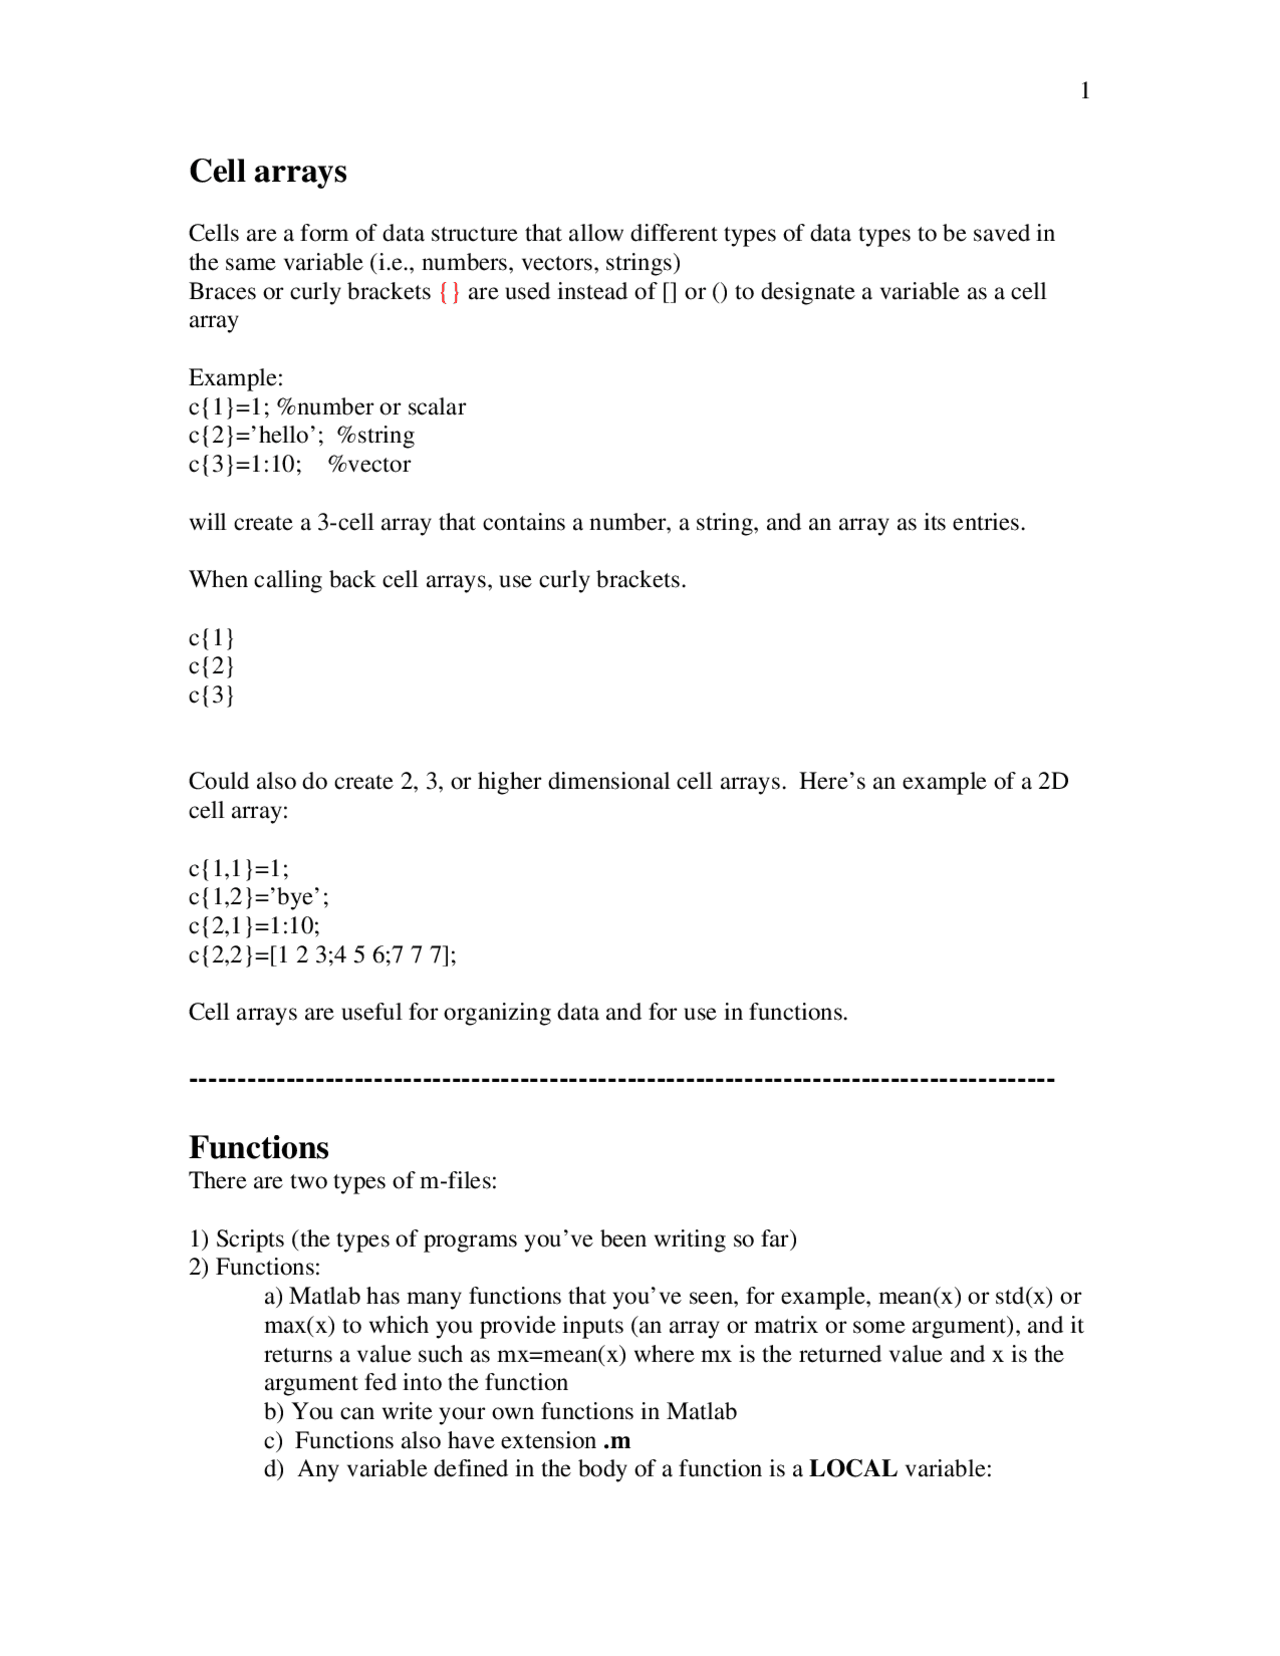 Cell Arrays   Experiments in Matlab   Notes   Psych 20   Docsity